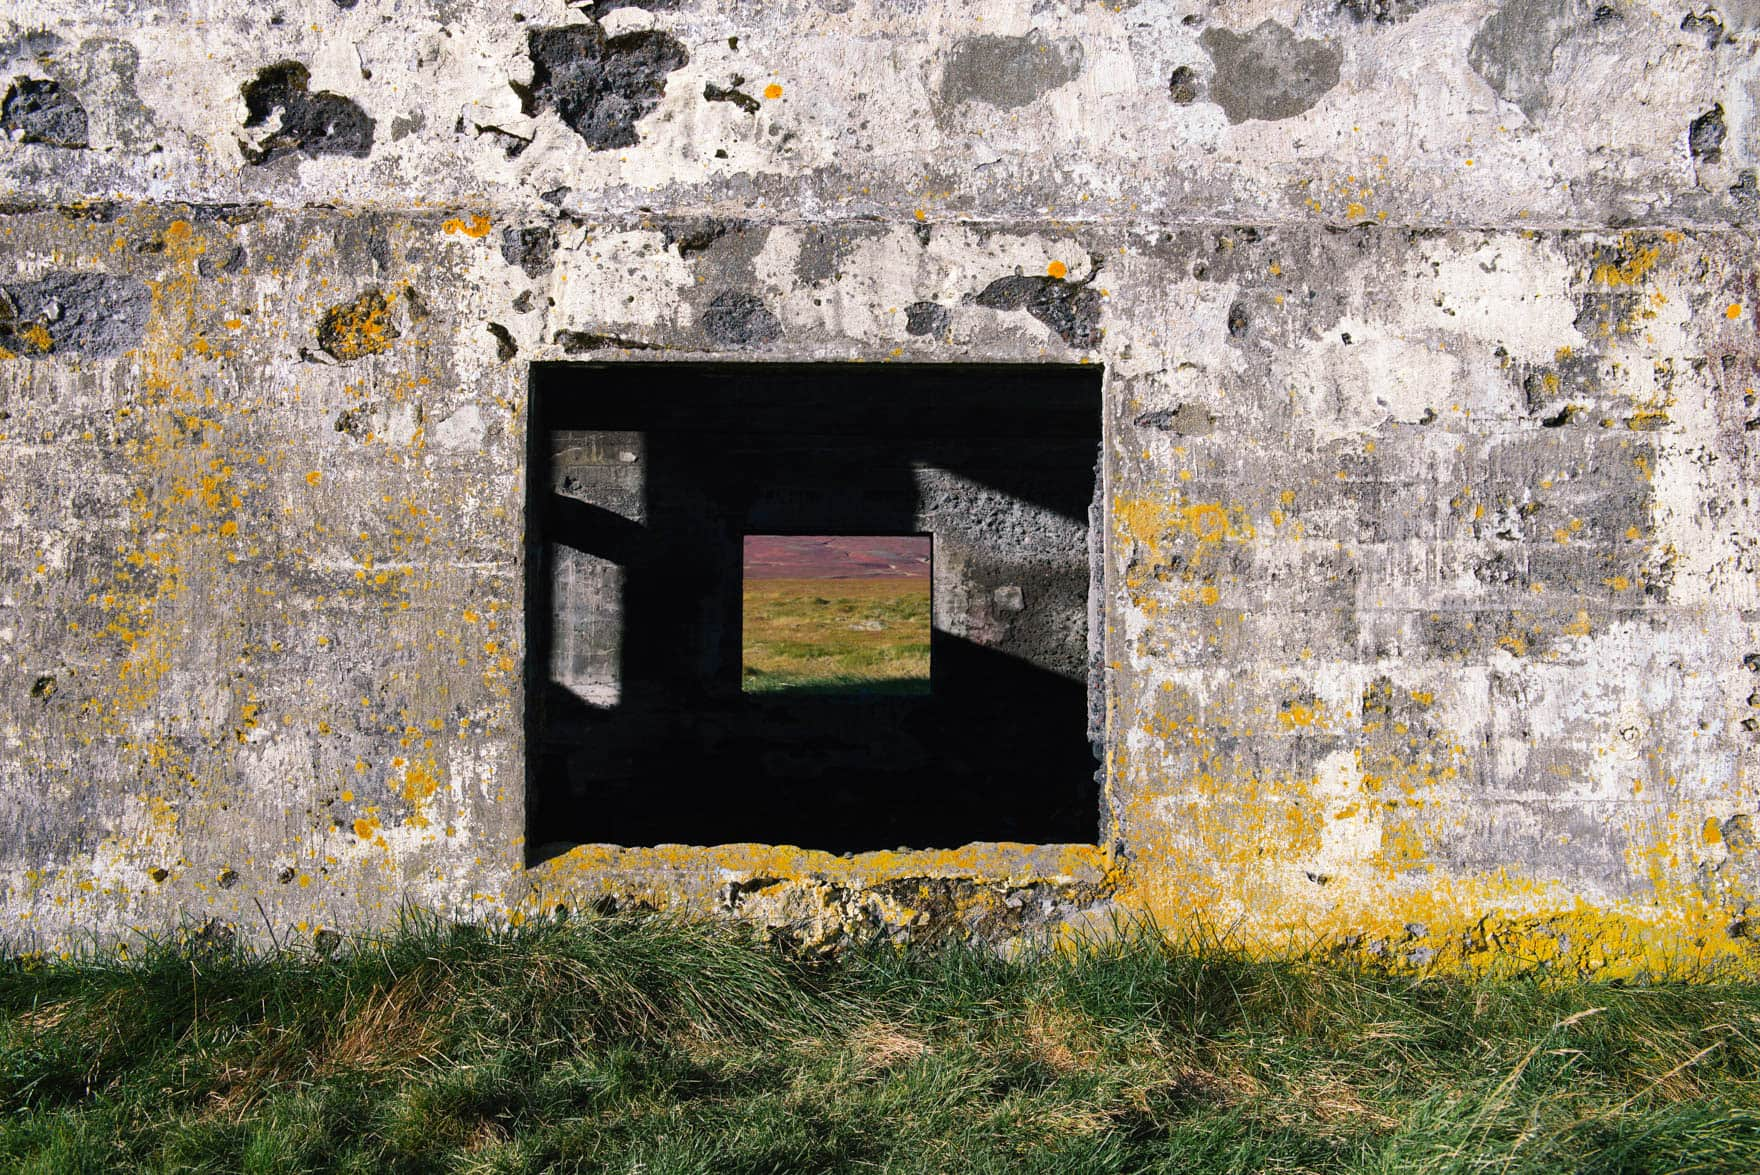 View of an open window that looks in through an abandoned concrete house and into the other window that reveals the colorful landscape on the other side